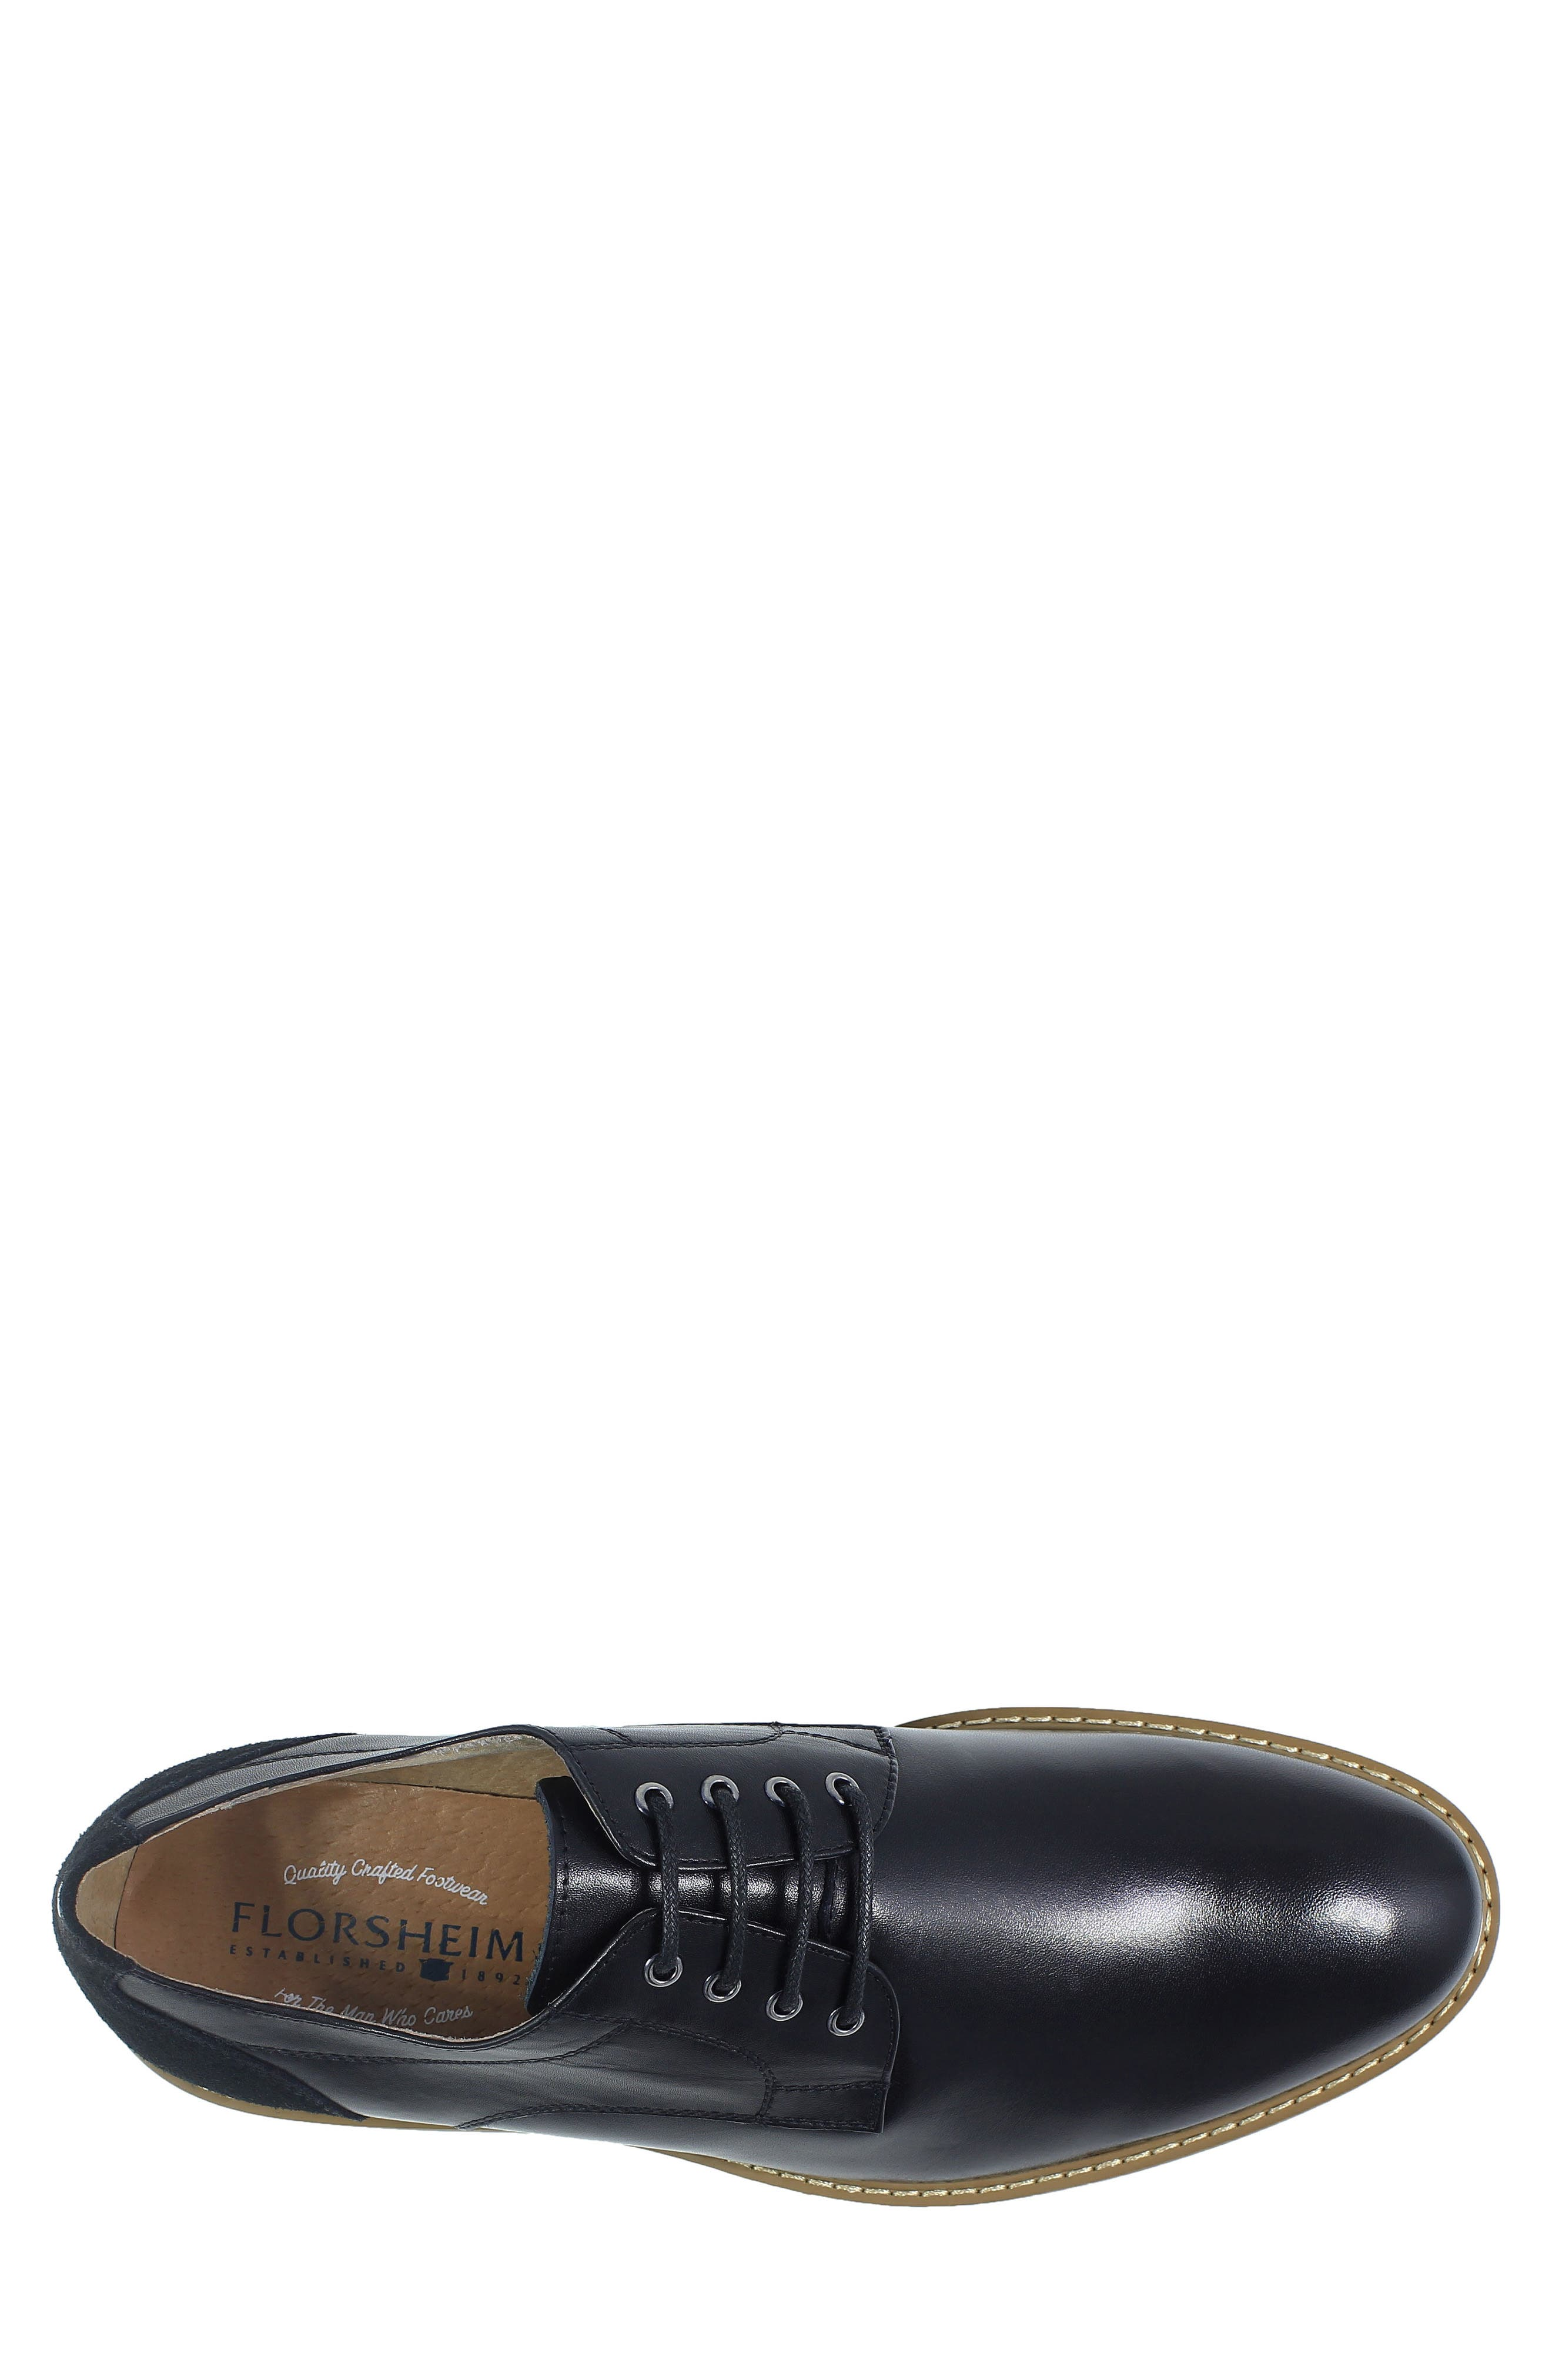 Union Buck Shoe,                             Alternate thumbnail 5, color,                             001